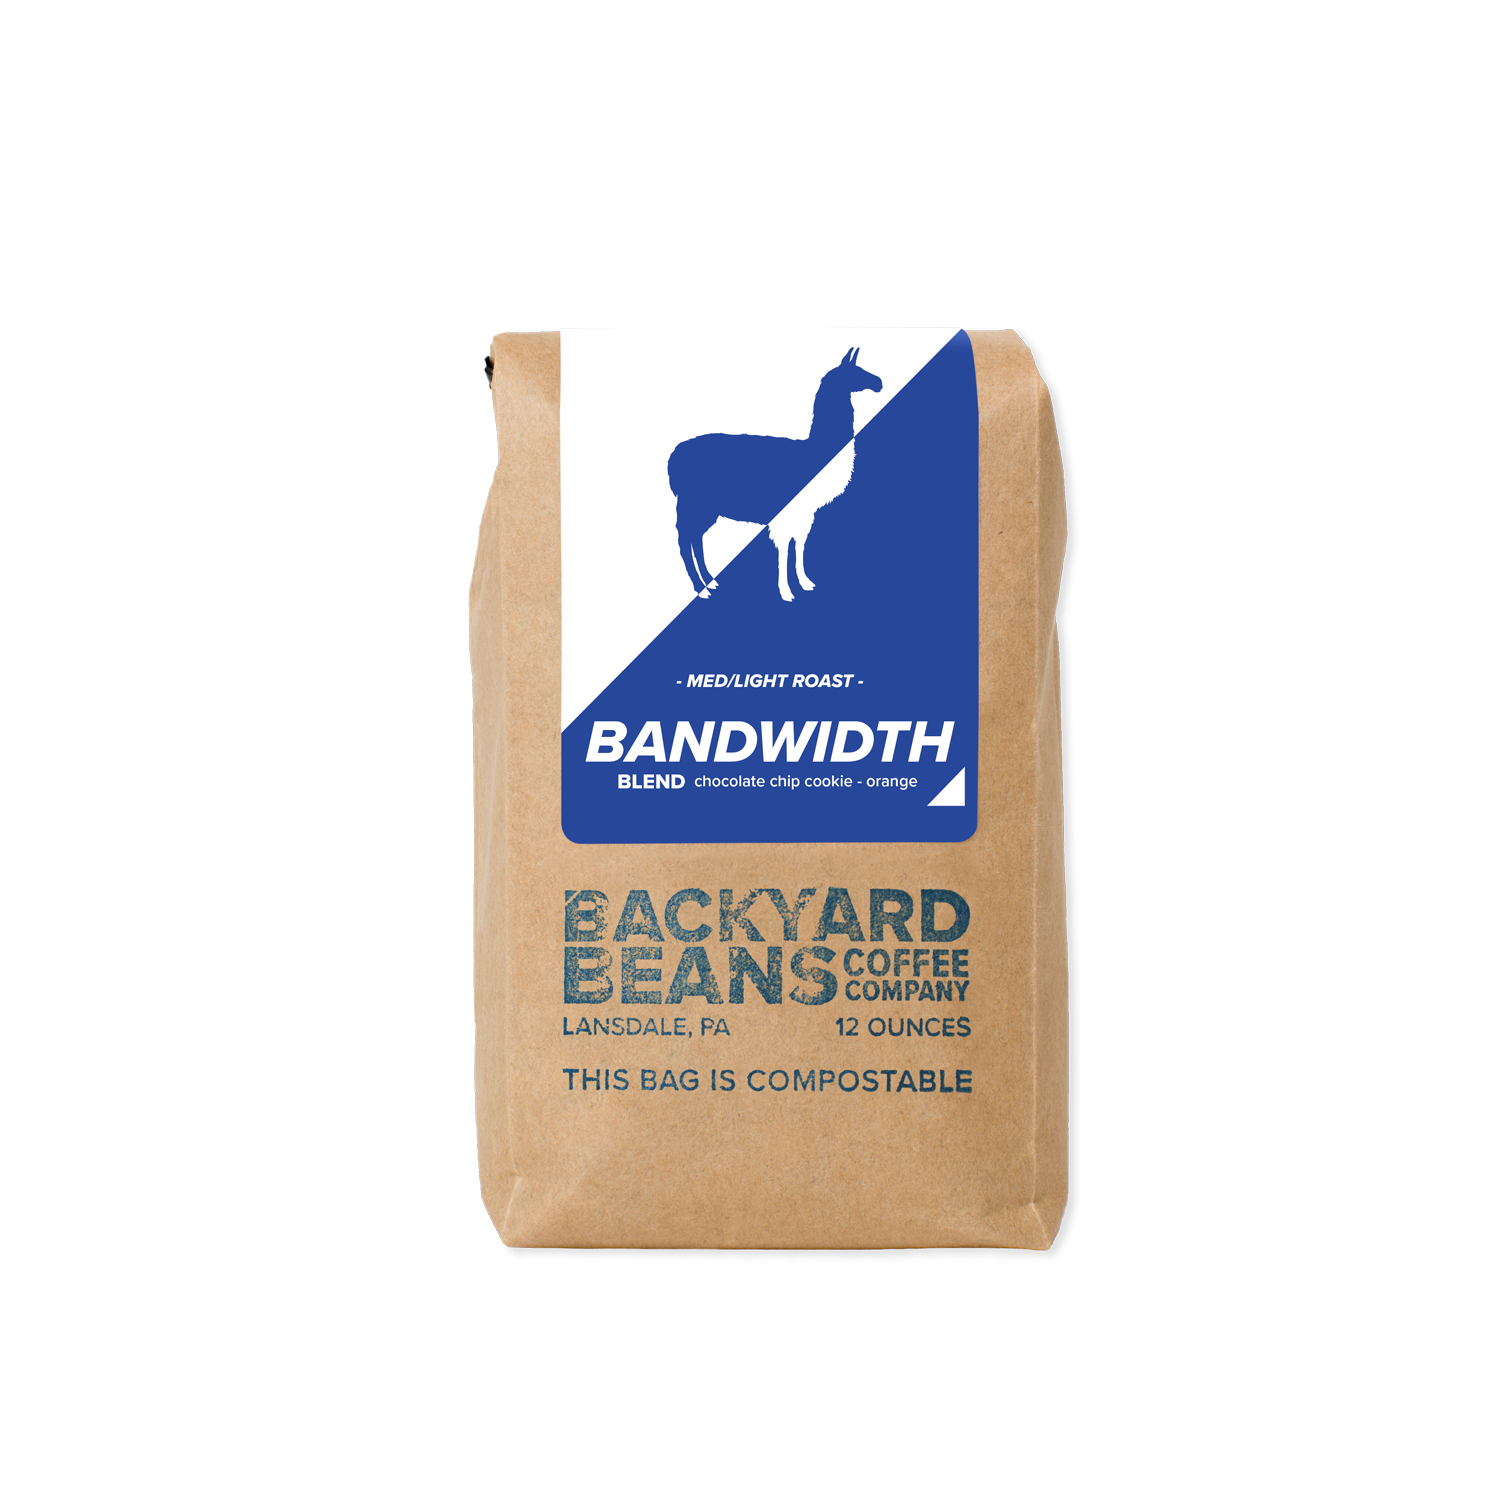 Bandwidth | Backyard Beans Coffee Co. | Dript Coffee Co.